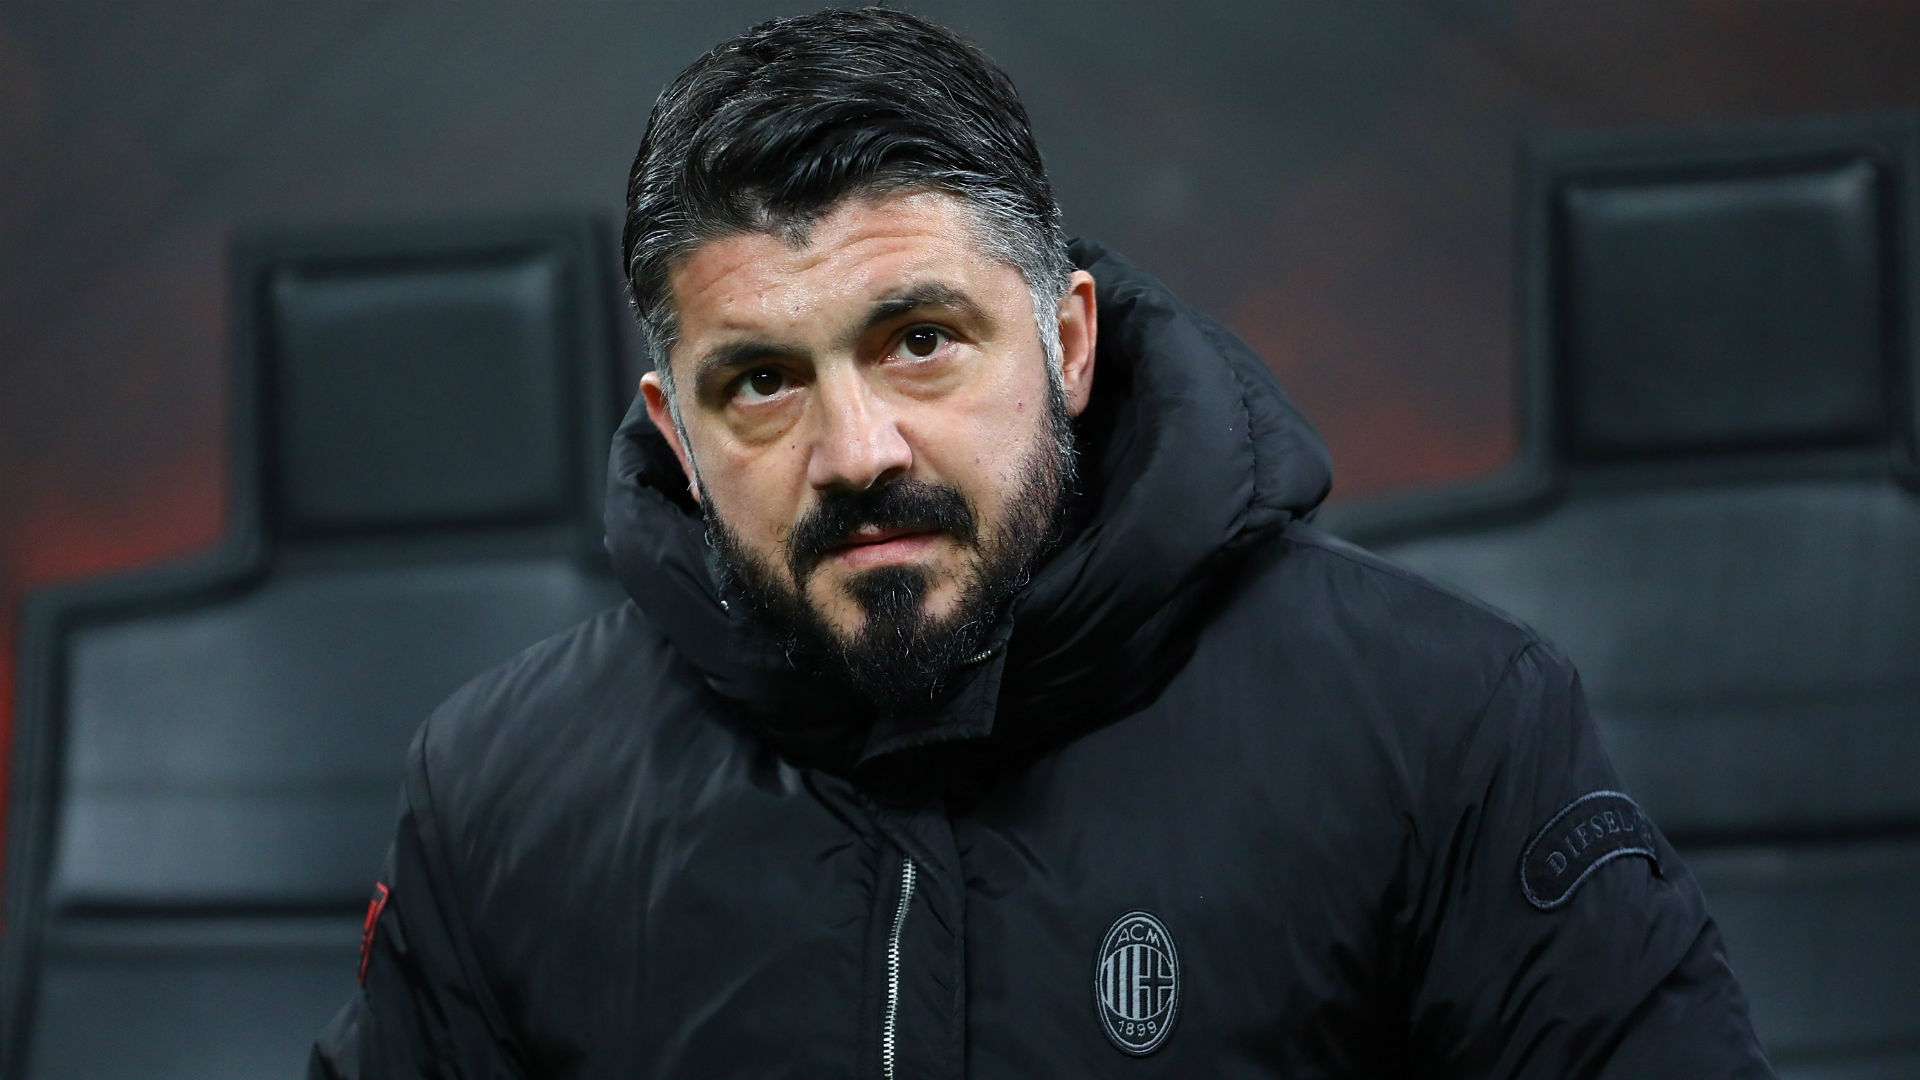 AC Milan v Inter: Gattuso leads swift shift in rivals' fortunes